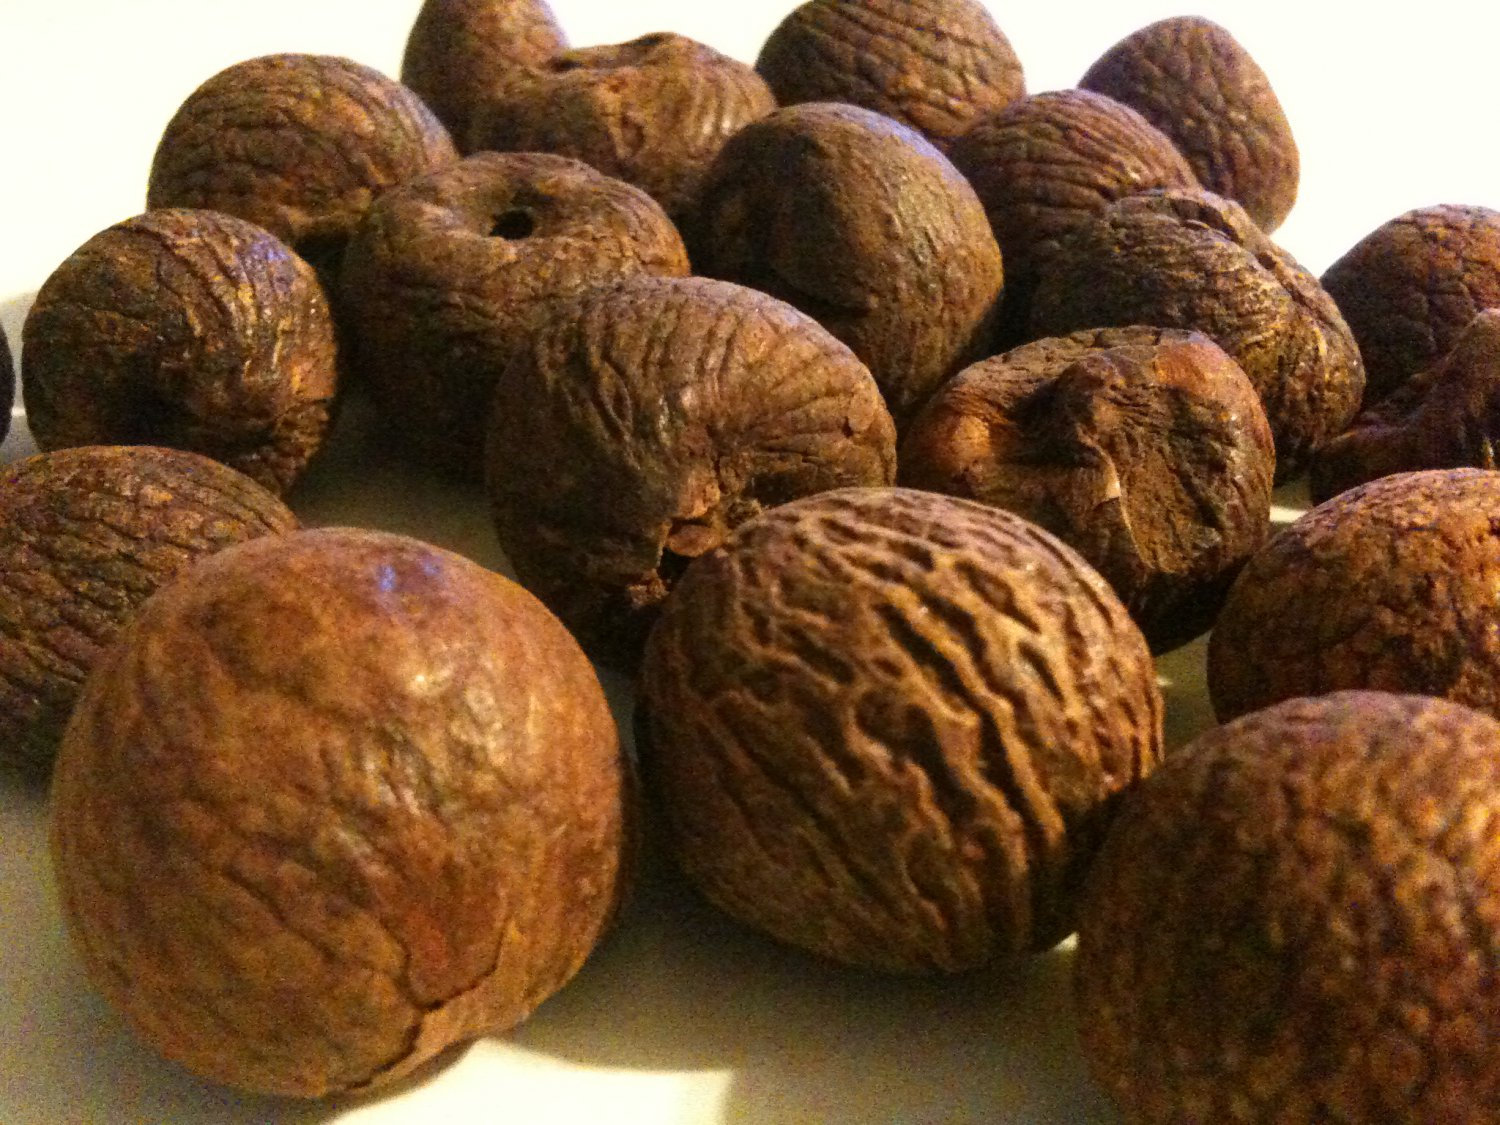 Asia's deadly secret: The scourge of the betel nut